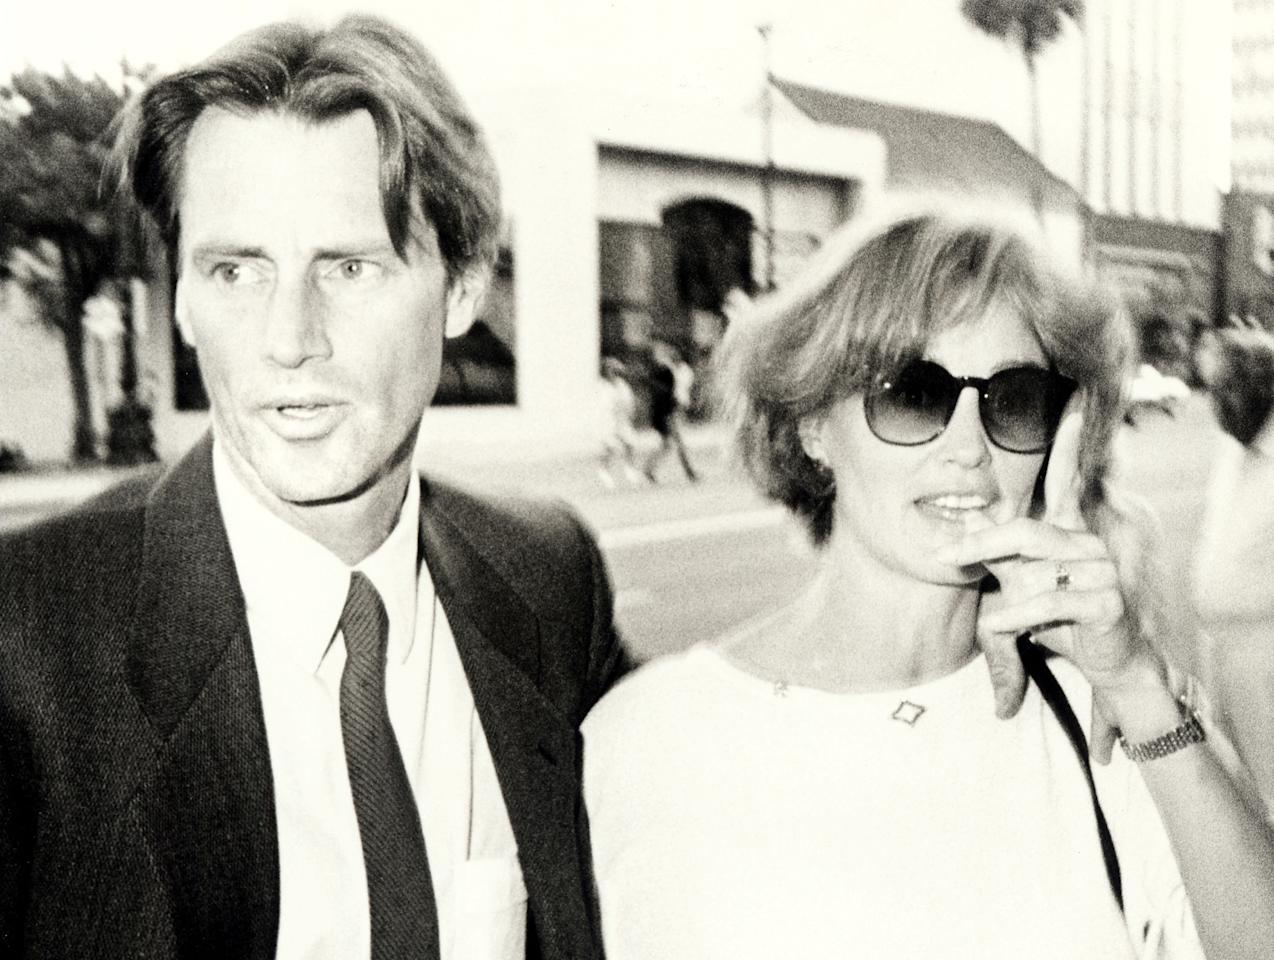 """<p>Sam Shepard, the Pulitzer Prize-winning playwright and actor, once said: """"I hate endings. Just detest them."""" He was referring to storytelling, and concluded that the most authentic endings are """"the ones which are already revolving towards another beginning. That's genius."""" </p><p>Shepard, one of the most talented artists of his generation, <a rel=""""nofollow"""" href=""""http://www.esquire.com/entertainment/news/a56723/sam-shepard-obituary/"""">died Monday, 31 July, at the age of 73</a>. It's an ending, sure, but one studded with new beginnings for all the generations to come who will discover Shepard for the first time. Whether you're discovering him for the first time, or have enjoyed his career for decades, here are 15 pictures to remind you that Shepard was a true icon of American cool.</p>"""